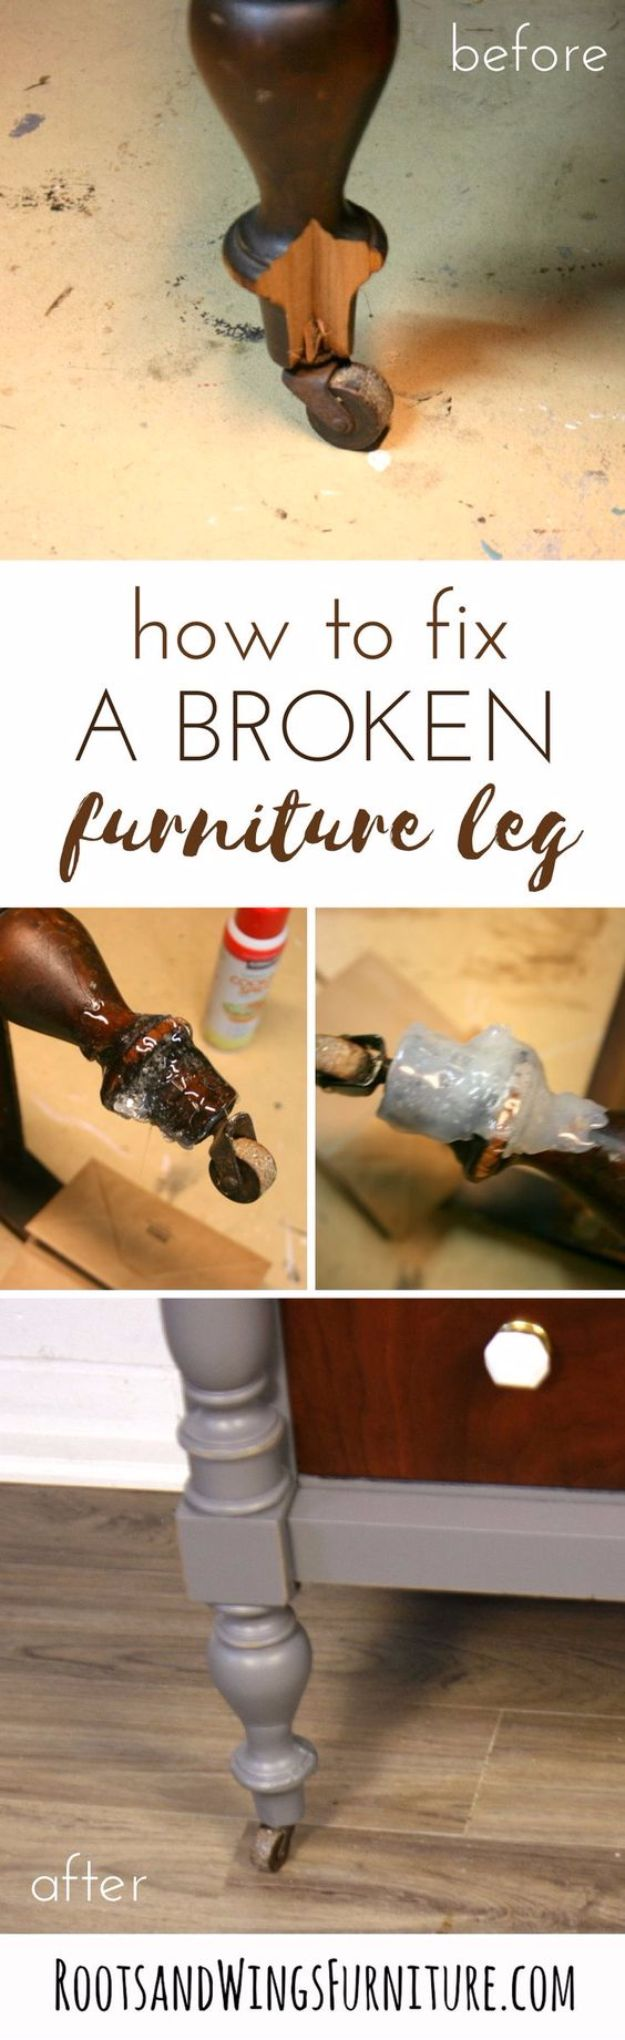 Easy Home Repair Hacks - Fix A Broken Furniture Leg - Quick Ways to Easily Fix Broken Things Around The House - DIY Tricks for Home Improvement and Repairs - Simple Solutions for Kitchen, Bath, Garage and Yard - Caulk, Grout, Wall Repair and Wood Patching and Staining http://diyjoy.com/easy-home-repair-hacks